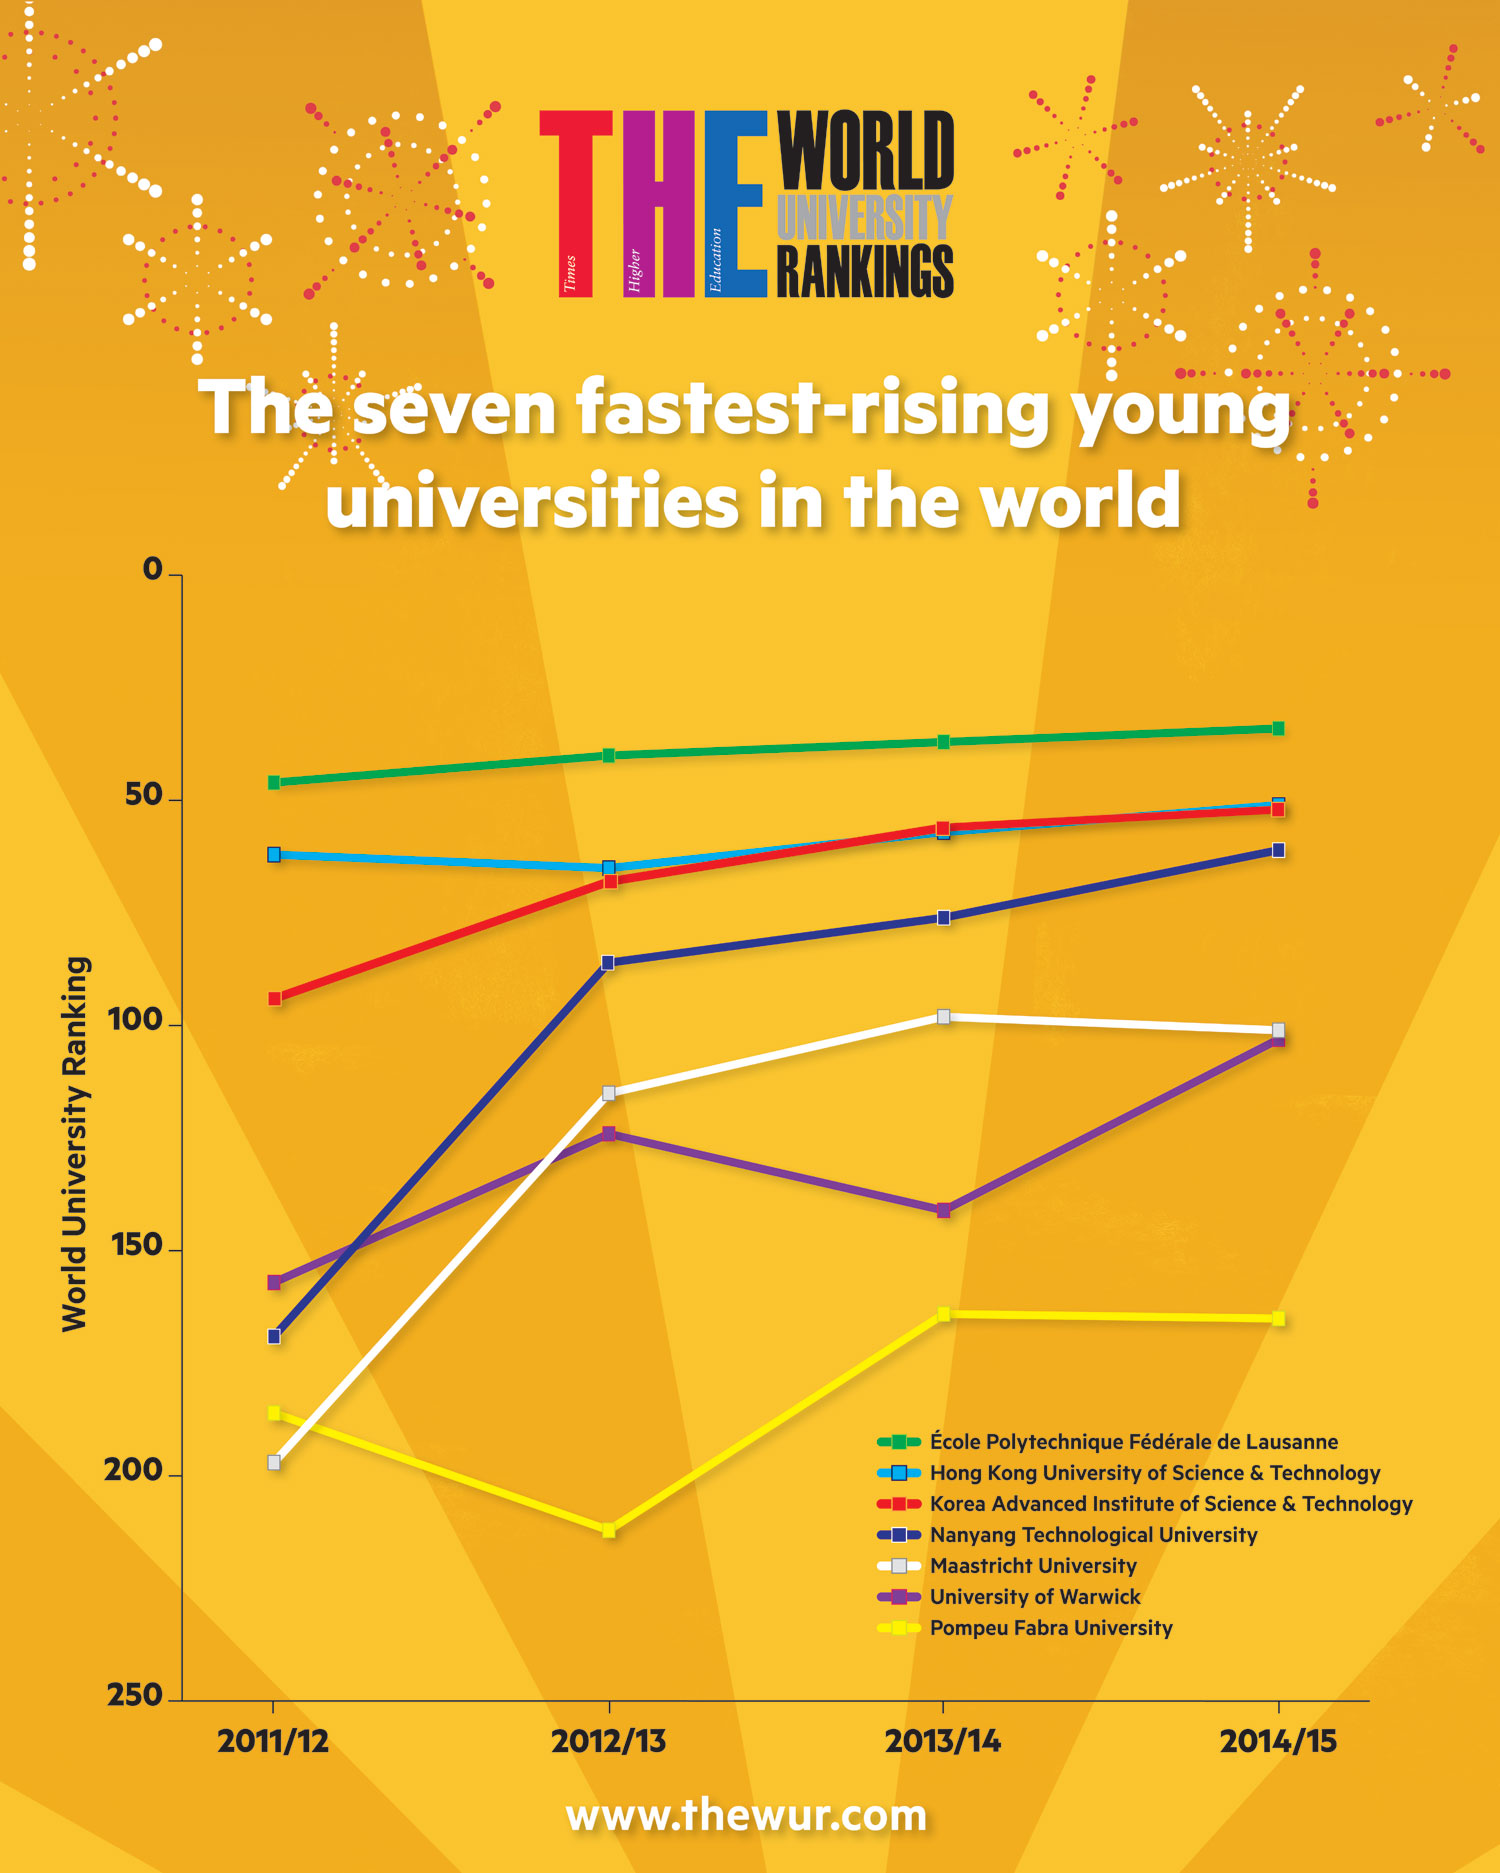 worlds-fastest-rising-young-universities-infographic-large